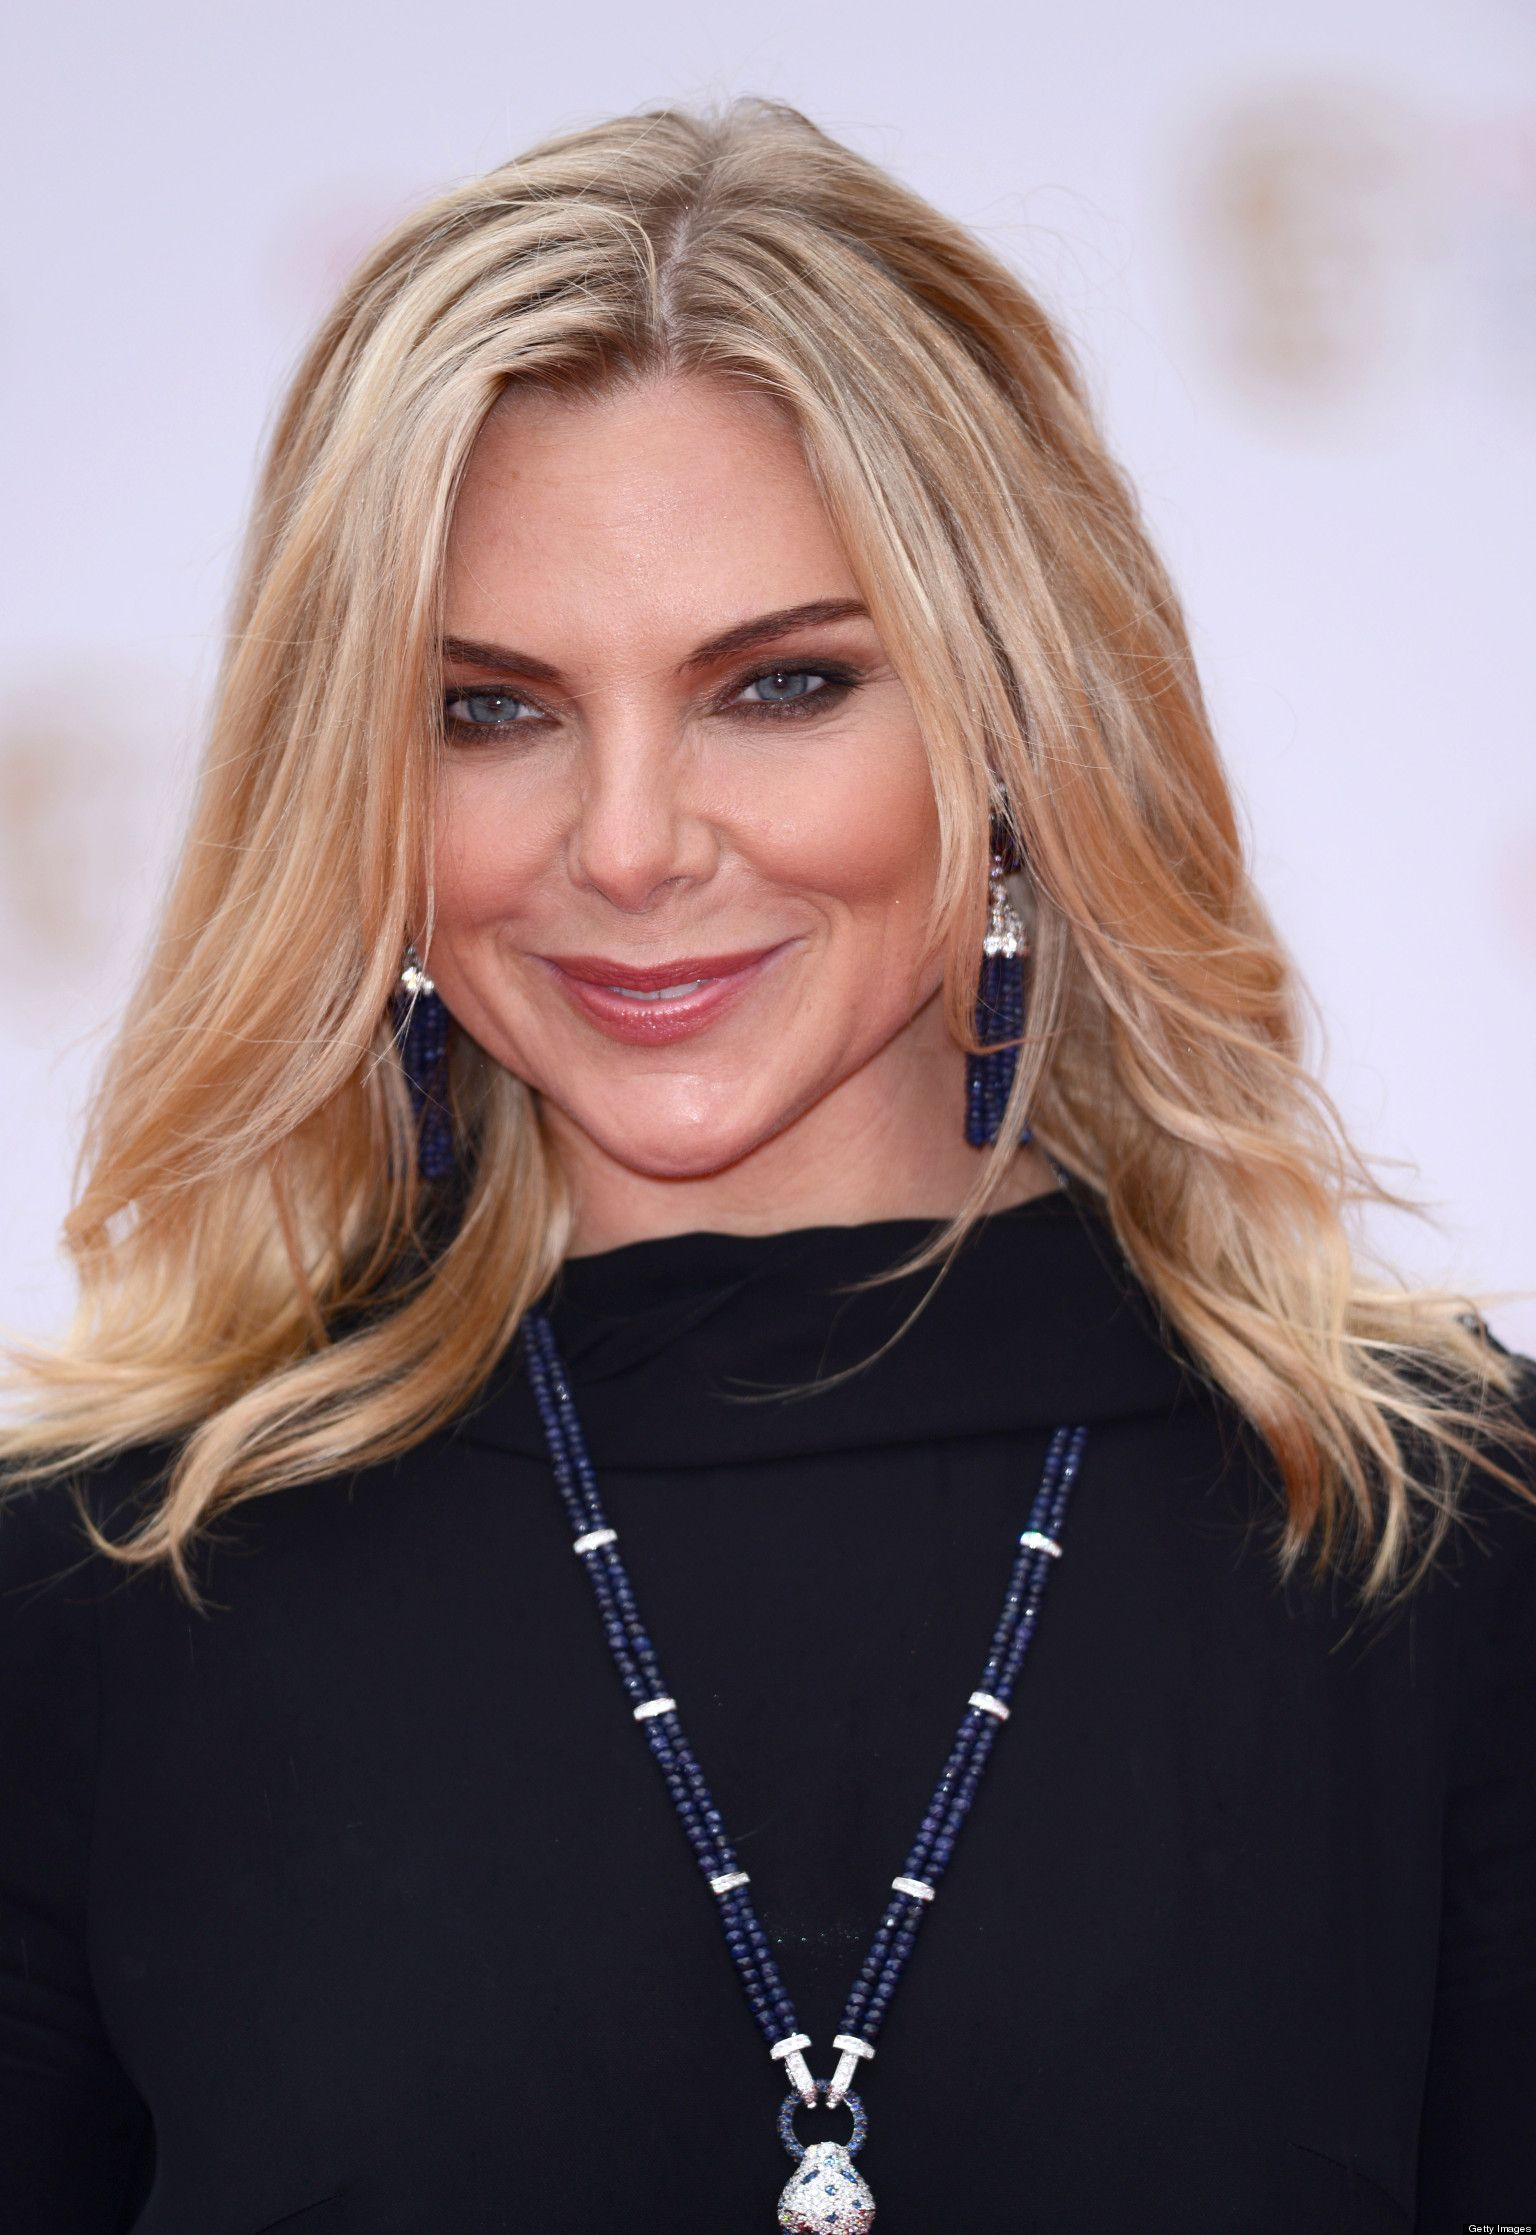 pics Samantha Womack